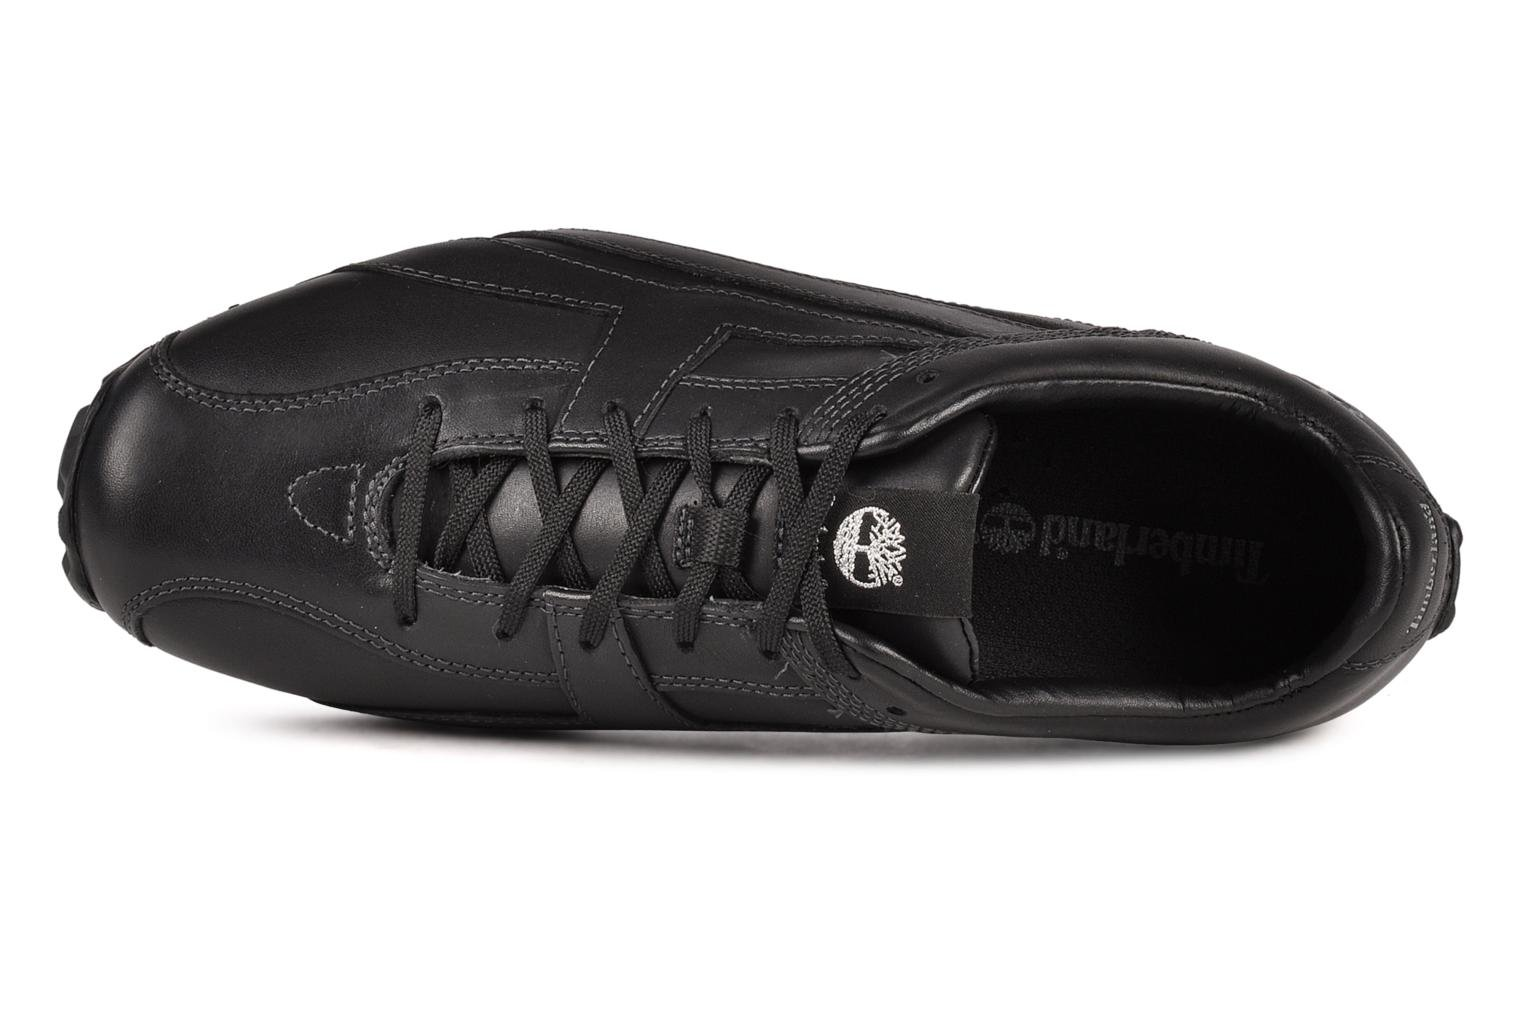 BW Fells FTP Trainer low Black